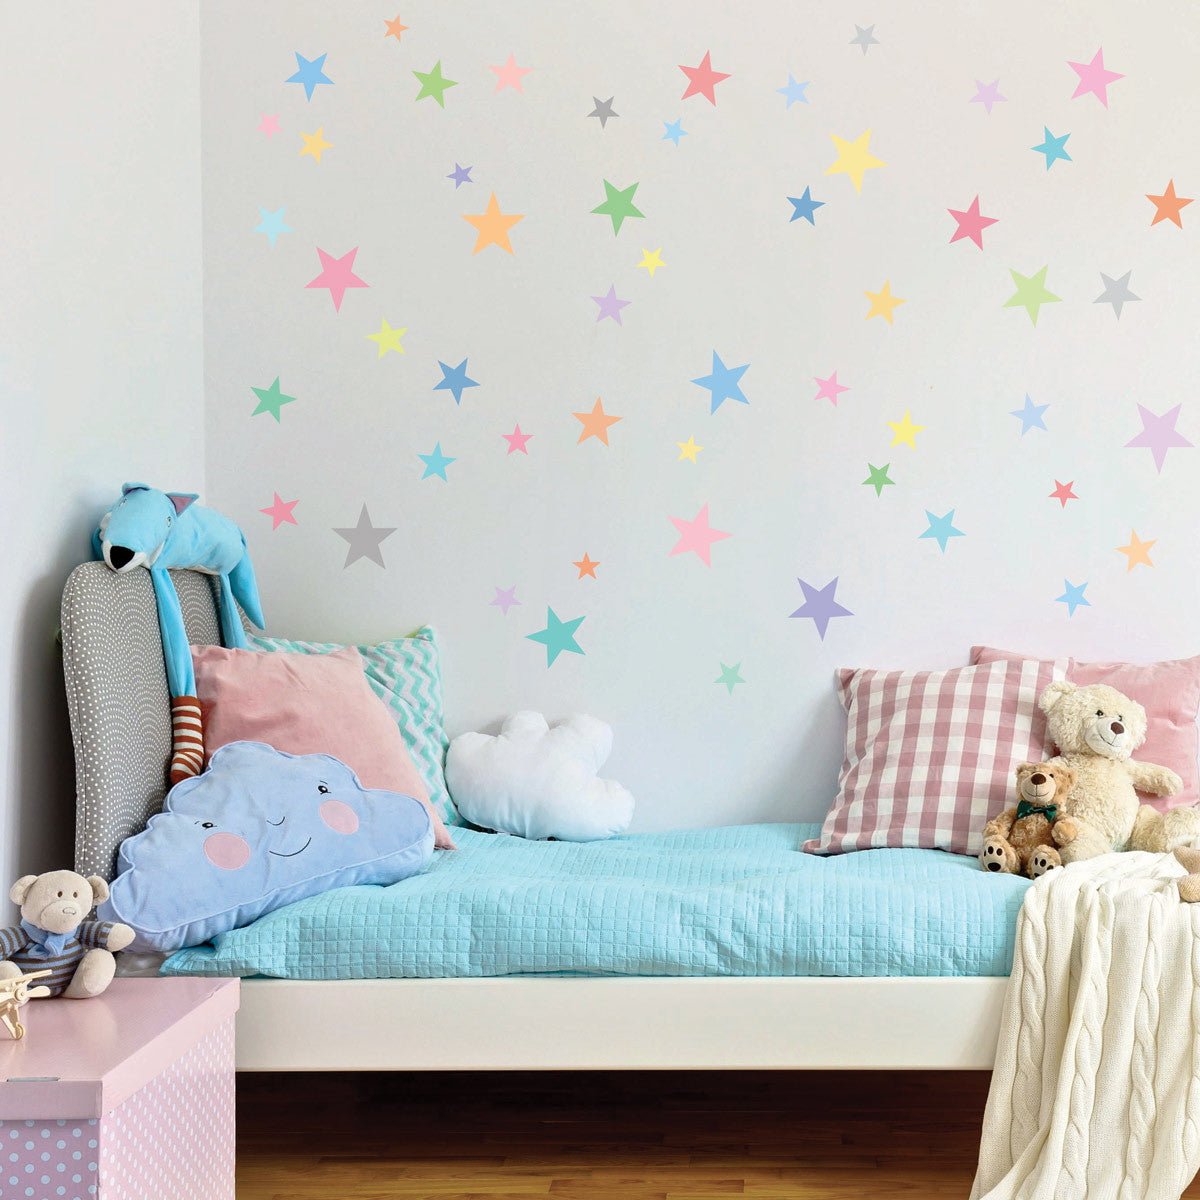 Wall decals stars pastel sorbet colors eco friendly fabric wall decals stars pastel sorbet colors eco friendly fabric removable reusable matte wall stickers amipublicfo Gallery